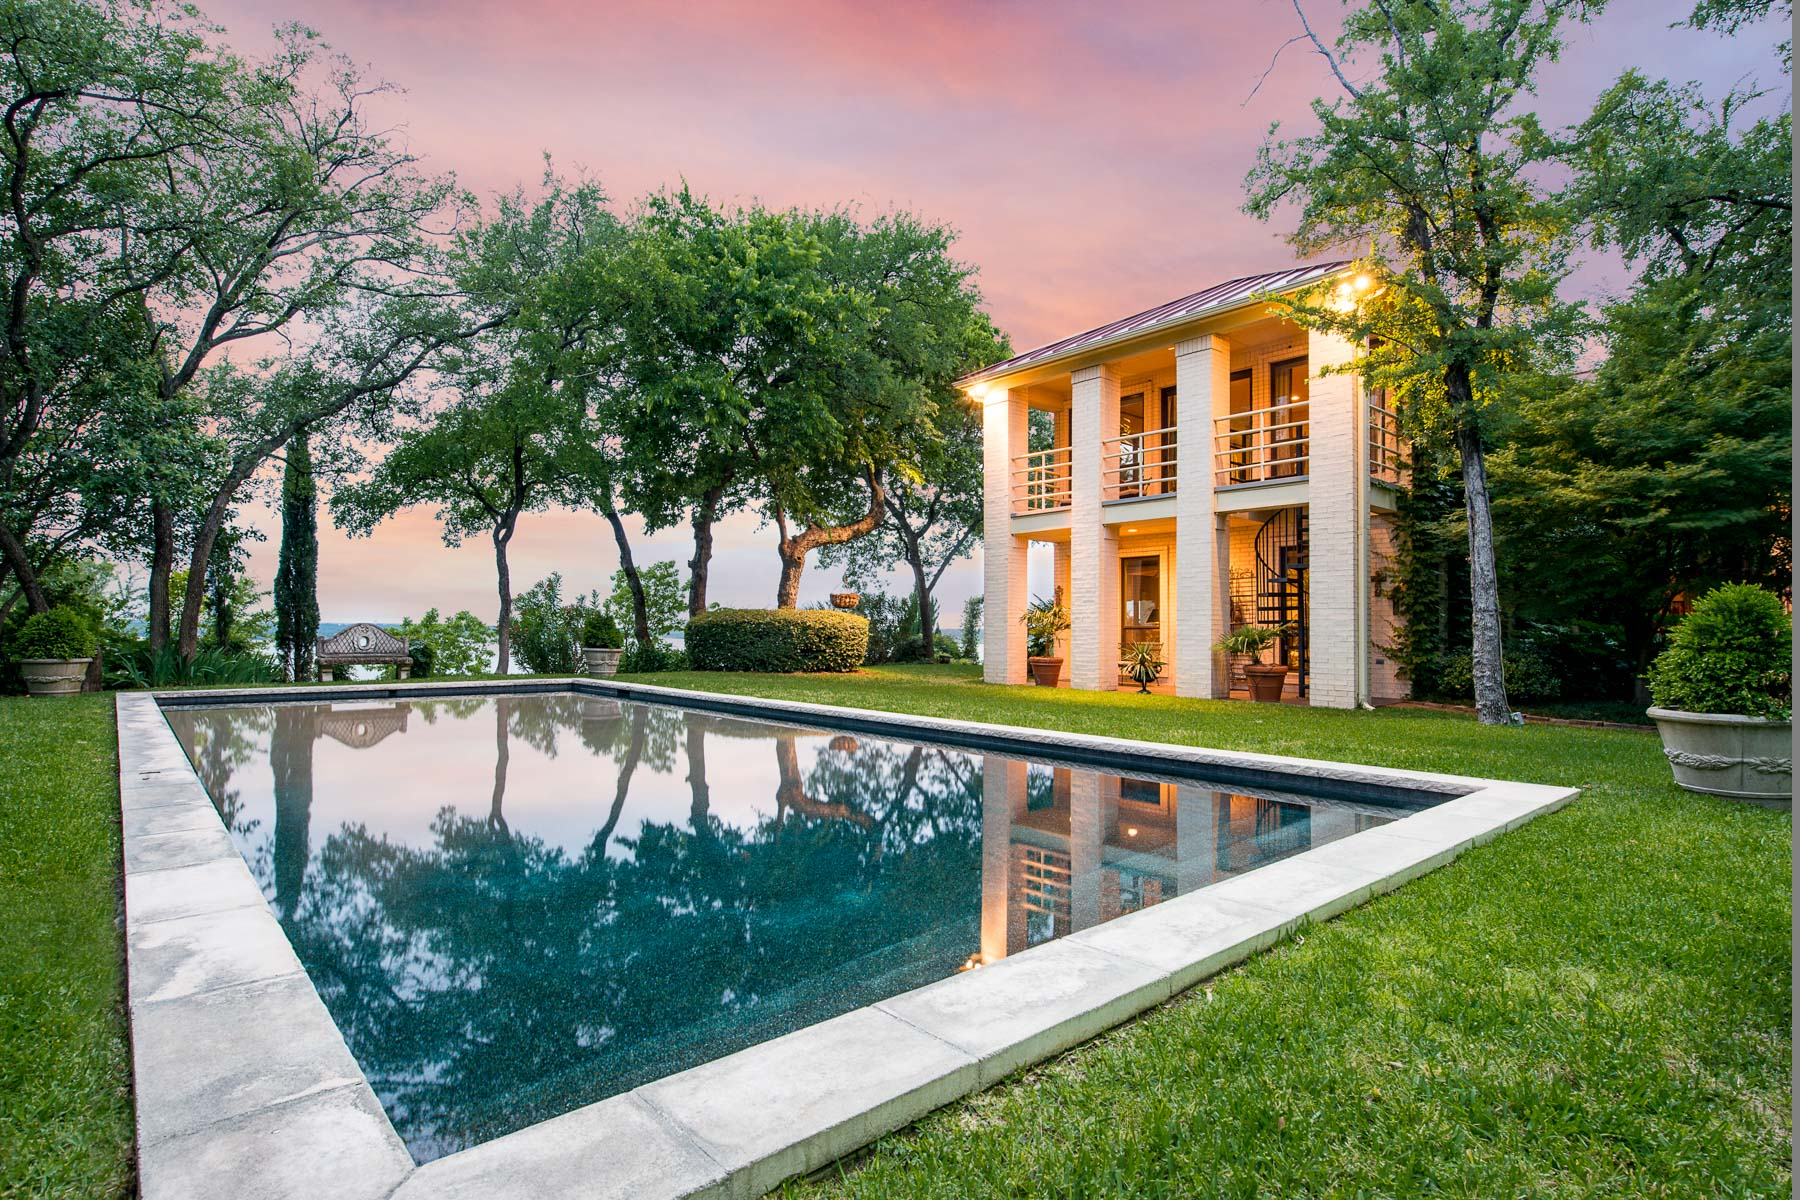 Villa per Vendita alle ore Mediterranean Lake House 9975 Boat Club Road Fort Worth, Texas, 76179 Stati Uniti